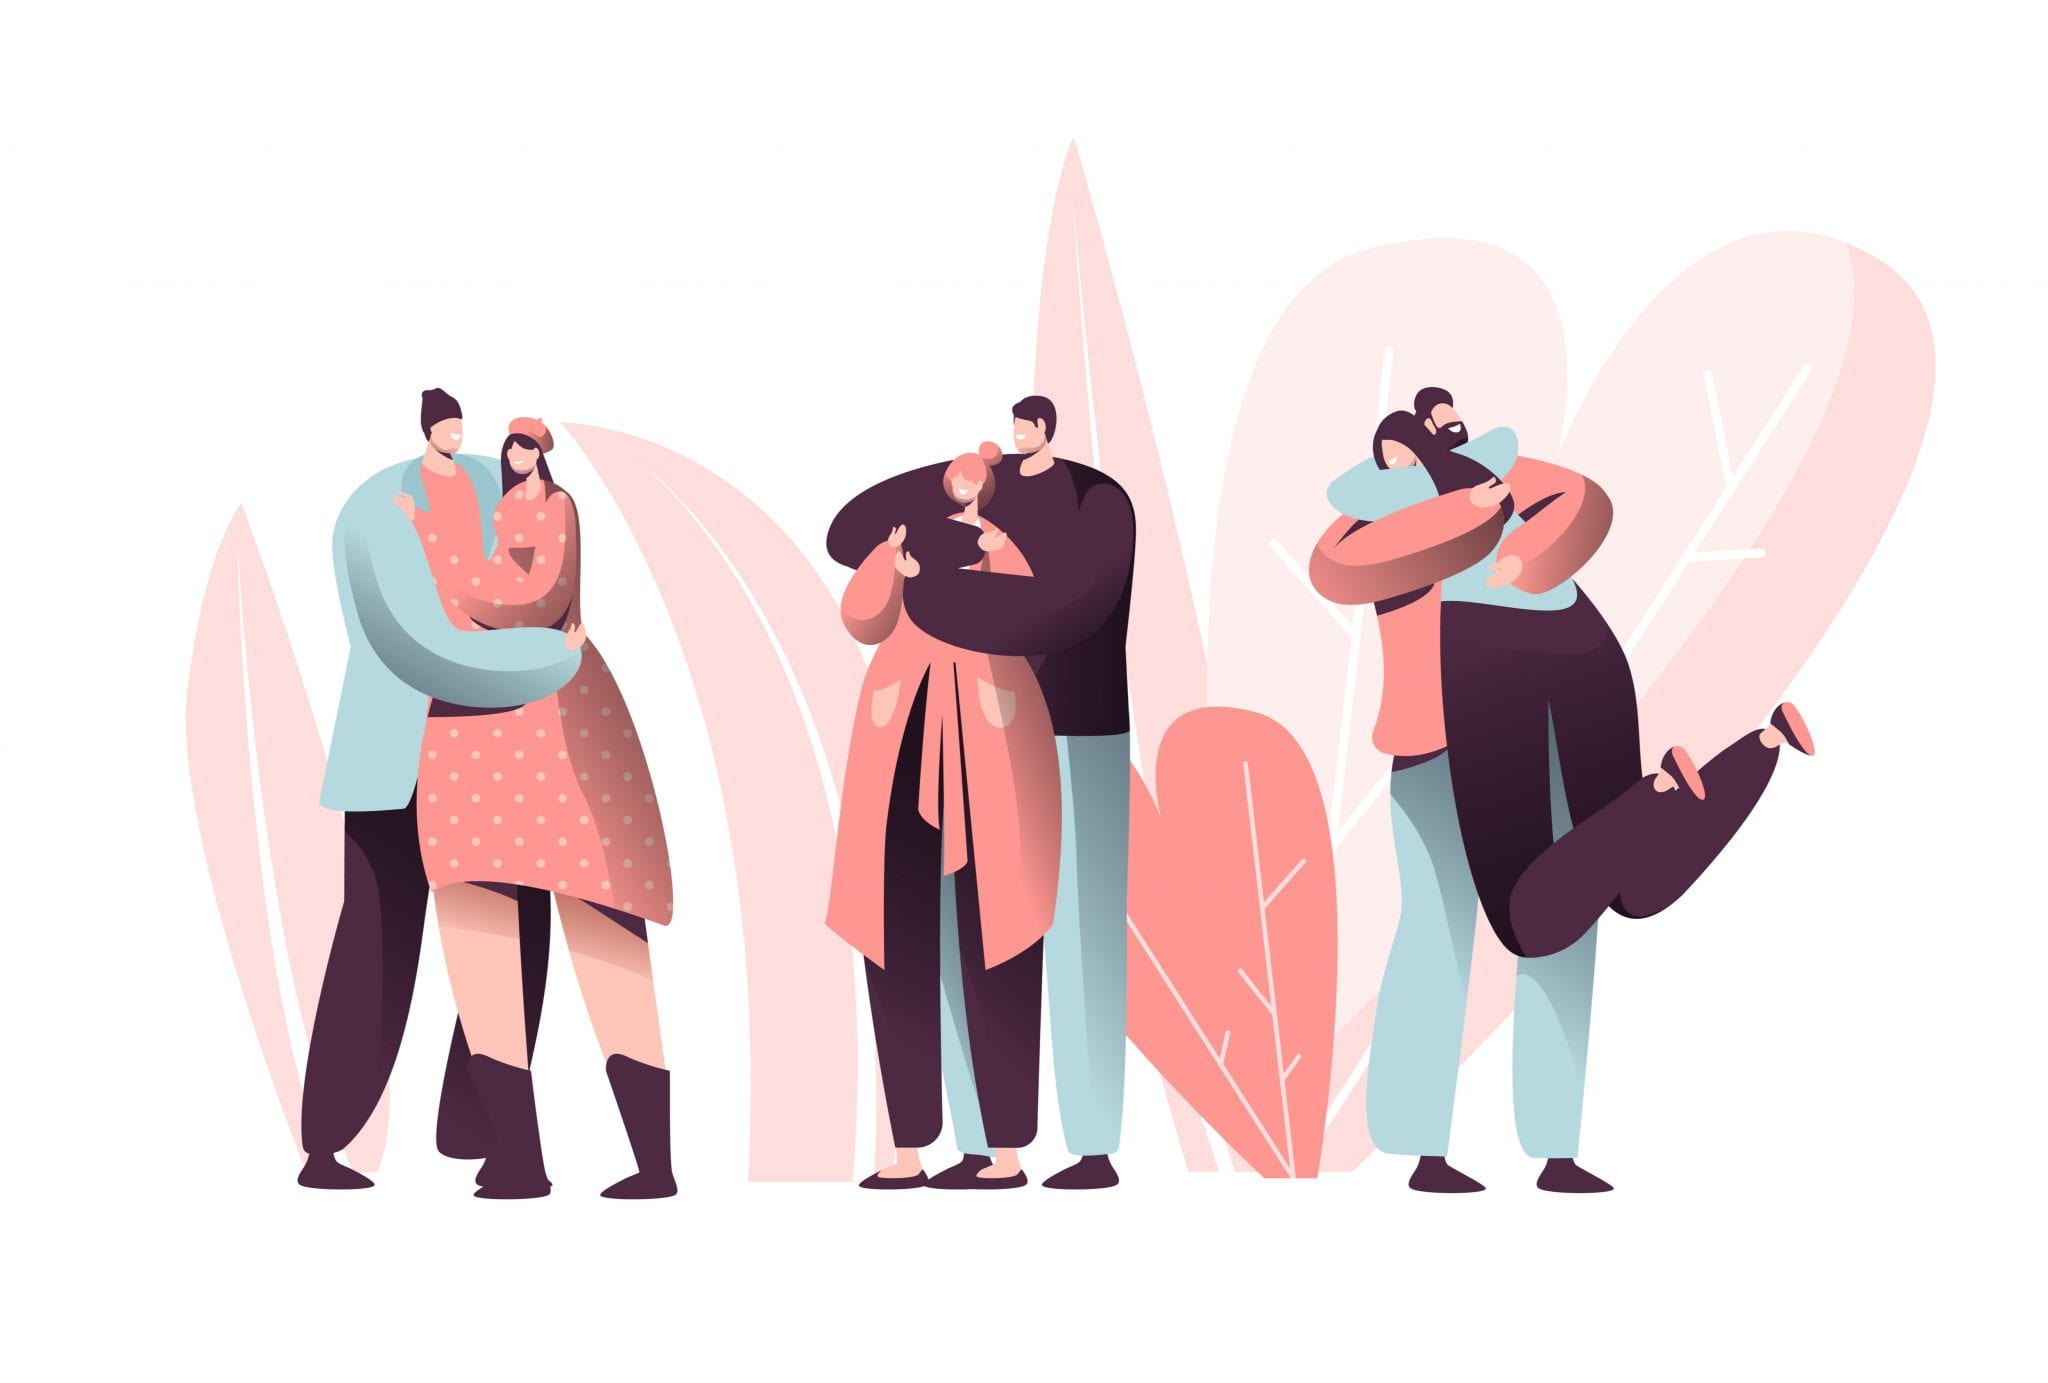 Love Couple Character Hug on Valentine Dating Set. Happy Lover Relationship Anniversary Lifestyle. Woman Man Romantic Connection